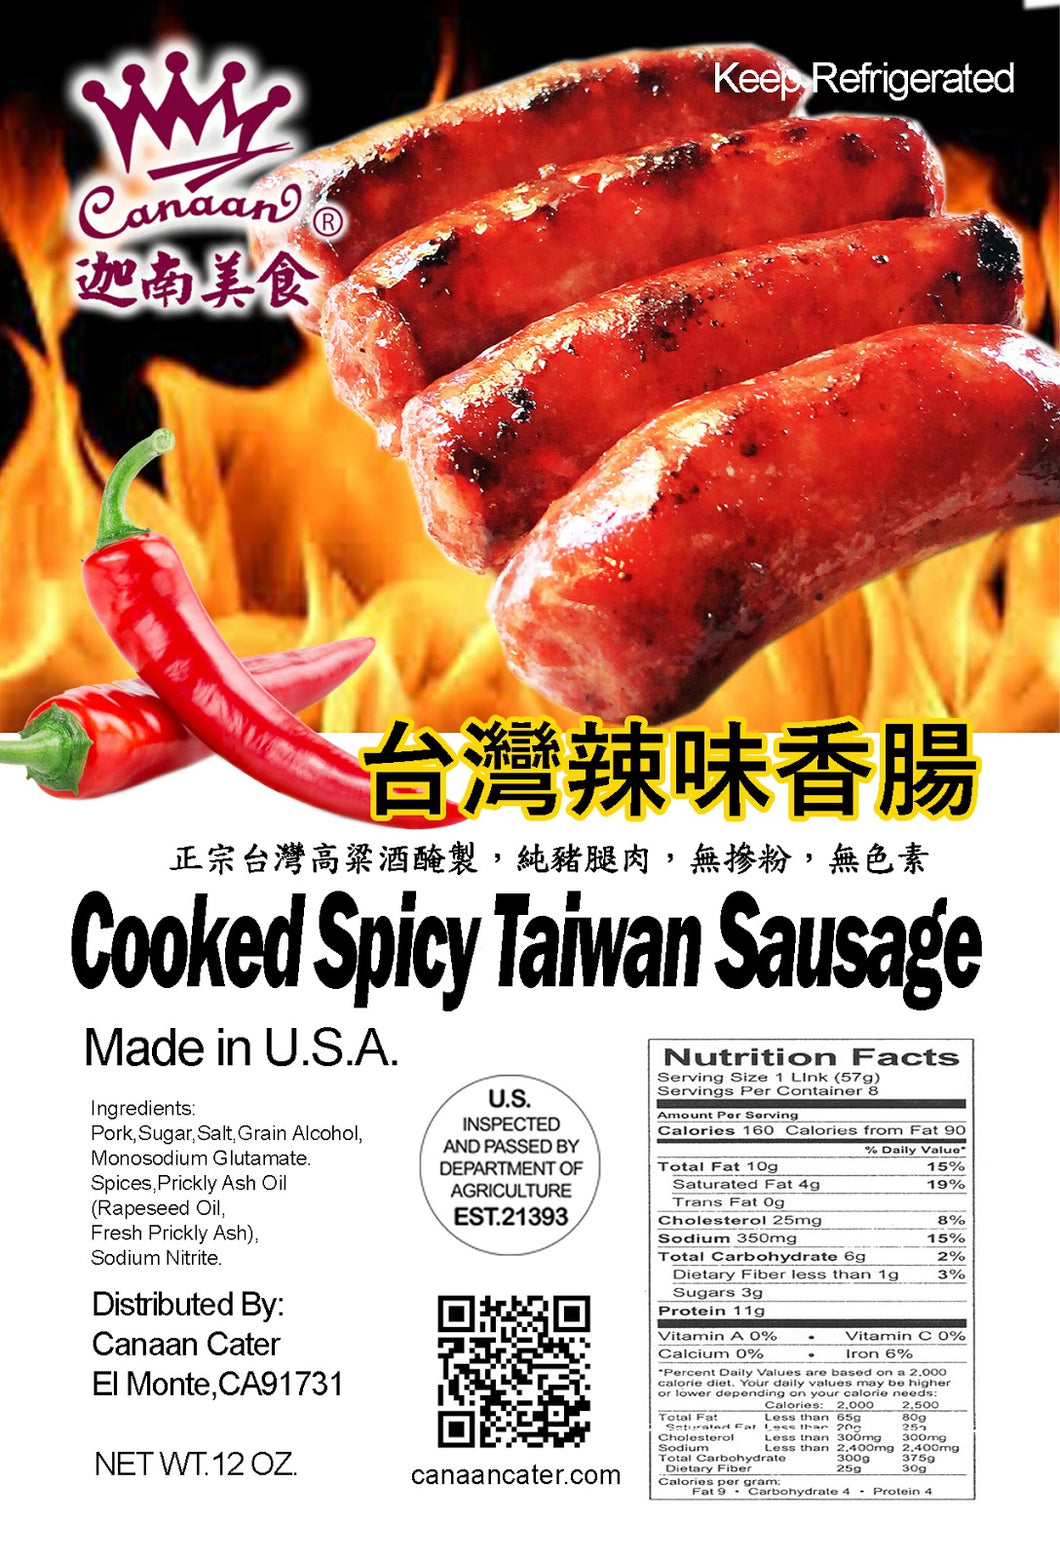 Cooked Spicy Taiwan Sausage (12 oz )冷凍台灣辣味香腸$10